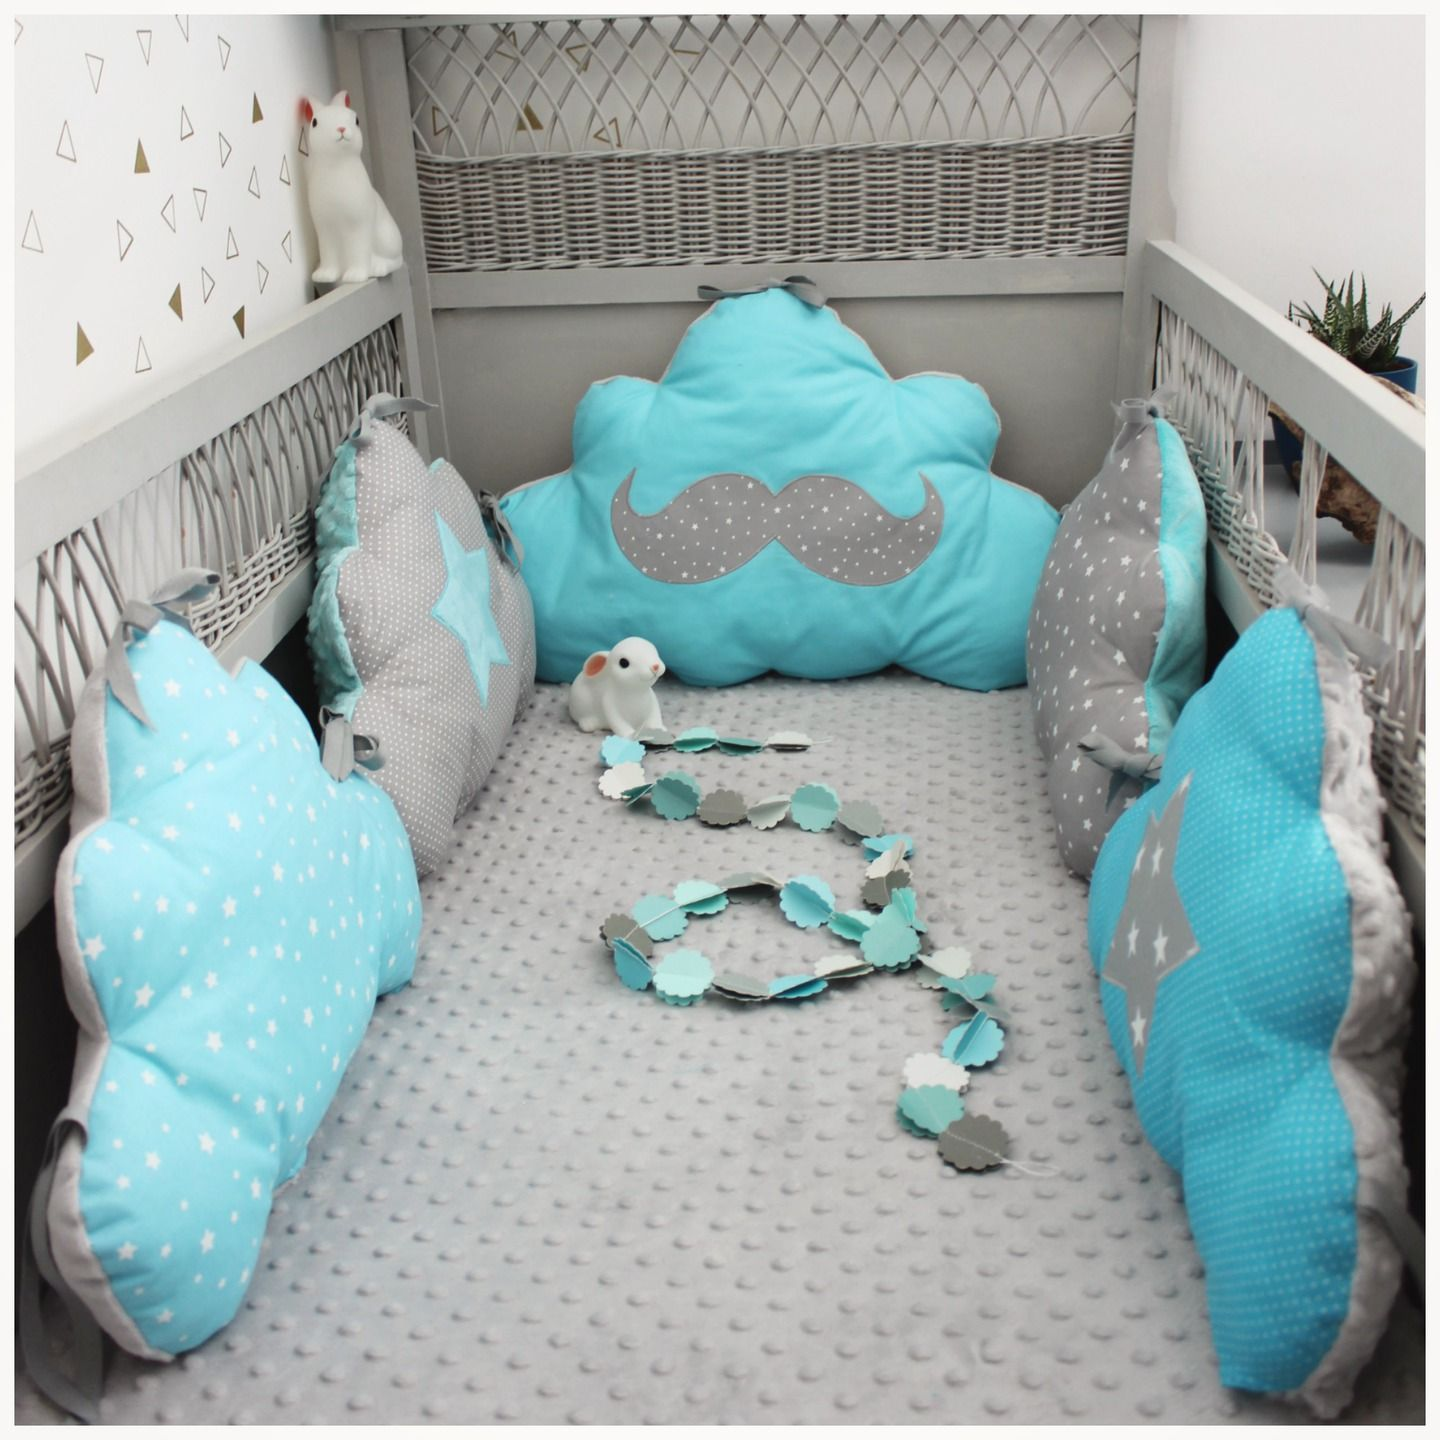 tour de lit nuage th me moustache bleu turquoise et gris tour de lit pinterest tour de lit. Black Bedroom Furniture Sets. Home Design Ideas